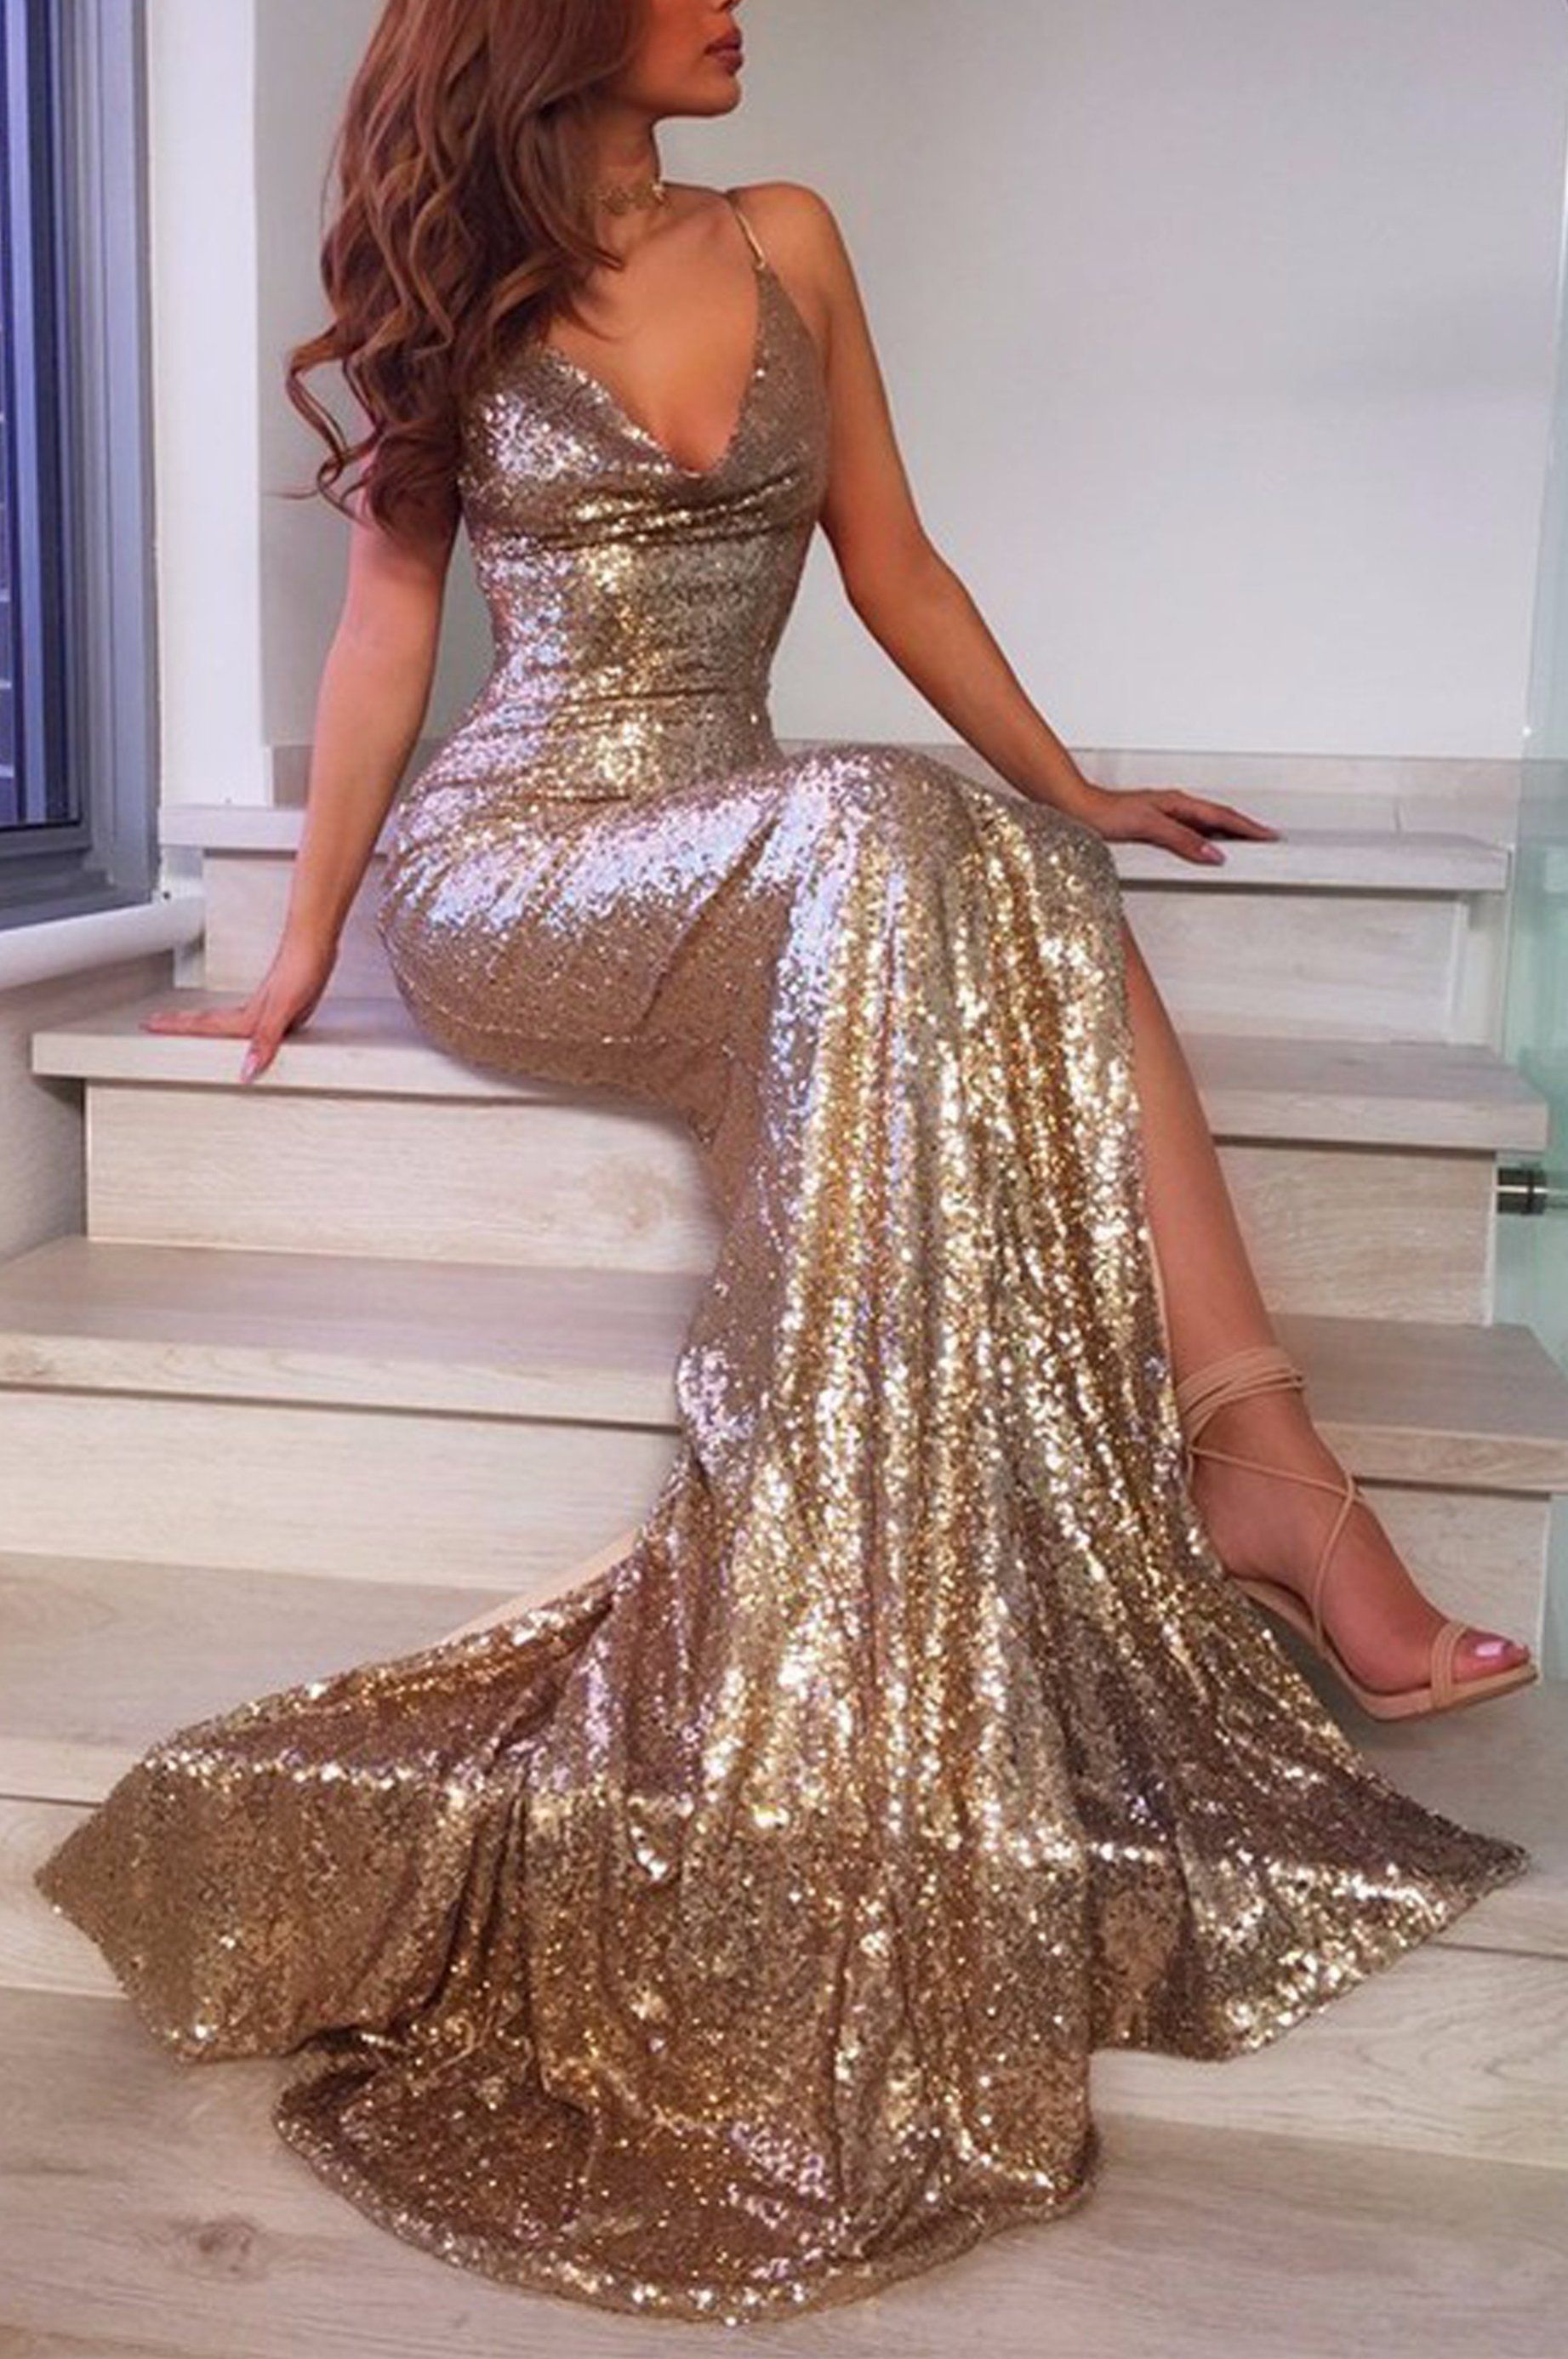 f3d97063f99ec Gorgeous Backless Prom Dresses - Sparkly Sequin Gold Tight Fitted Slit  Floor Length Mermaid Maxi Gown Dress 2018 to Wear to a Wedding as a Guest  Cocktail ...